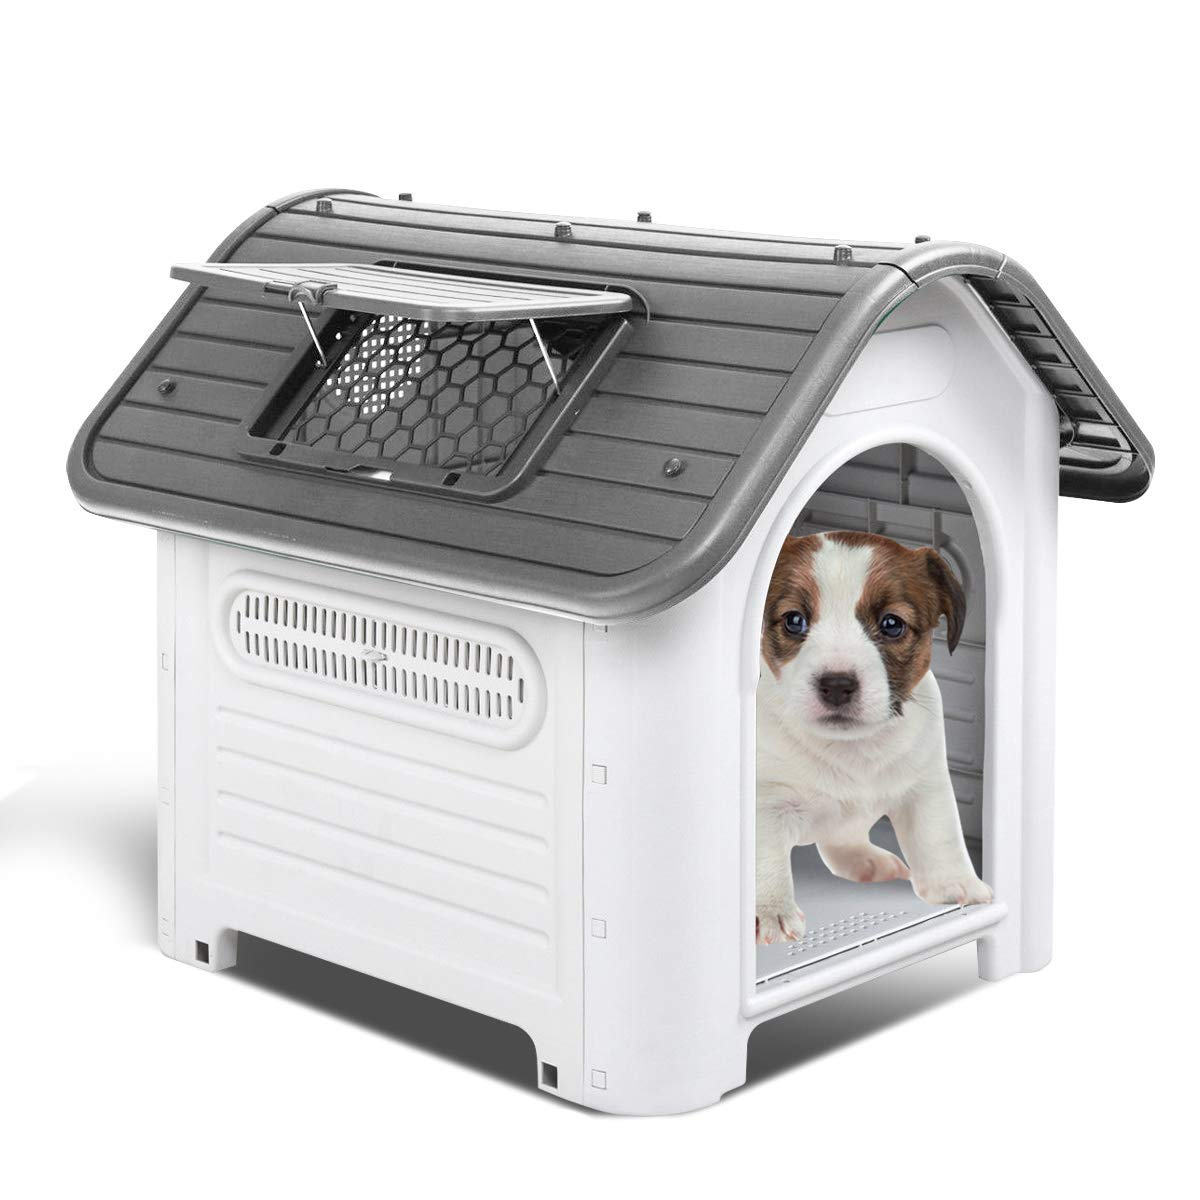 Up to 40 lbs Waterproof Plastic Dog Cat Kennel Puppy House Outdoor Pet Shelter Skylight Grey